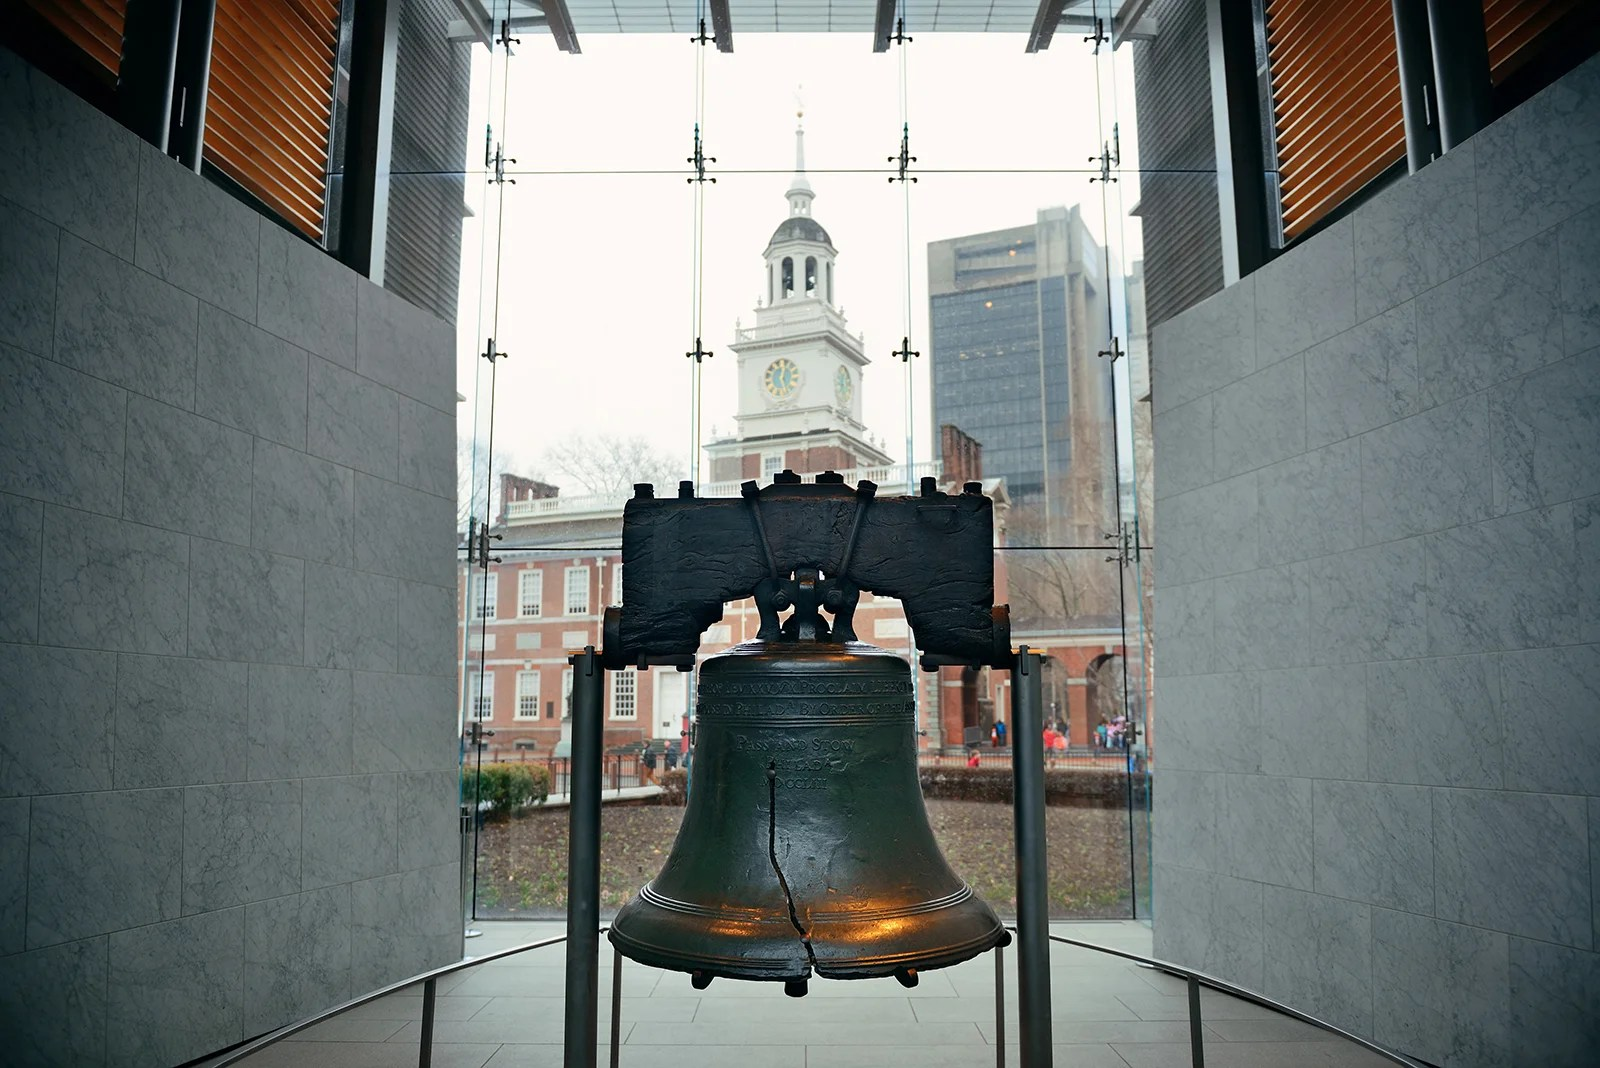 Liberty Bell and Independence Hall in Philadelphia. (Photo by rabbit75_ist/Getty Images)